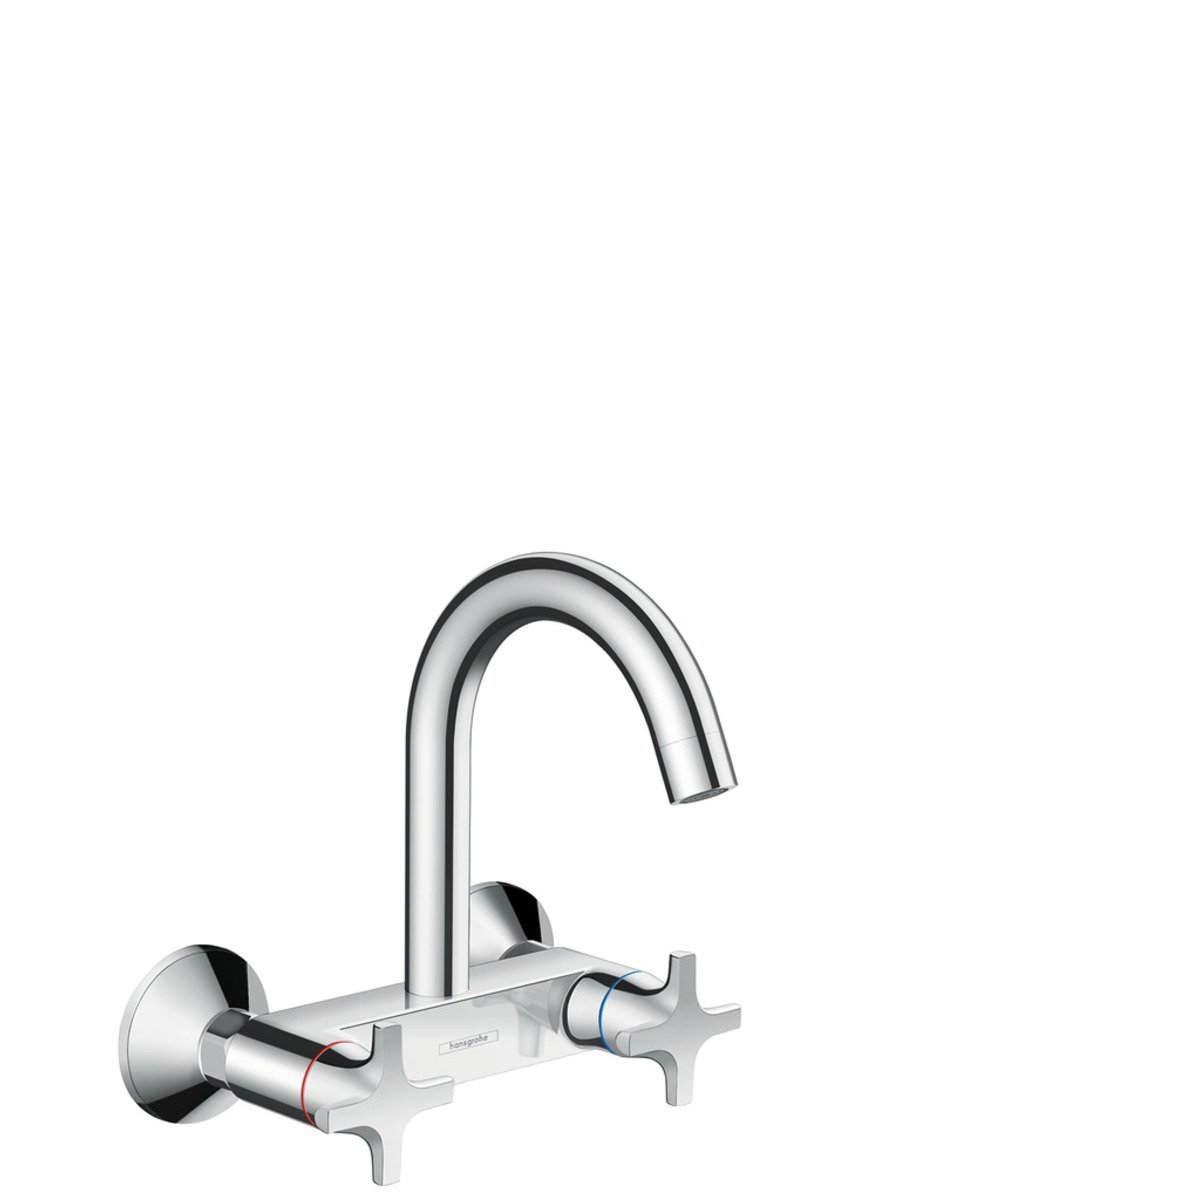 hansgrohe logis classic robinet de cuisine mural avec bec rehauss chrome 71286000. Black Bedroom Furniture Sets. Home Design Ideas